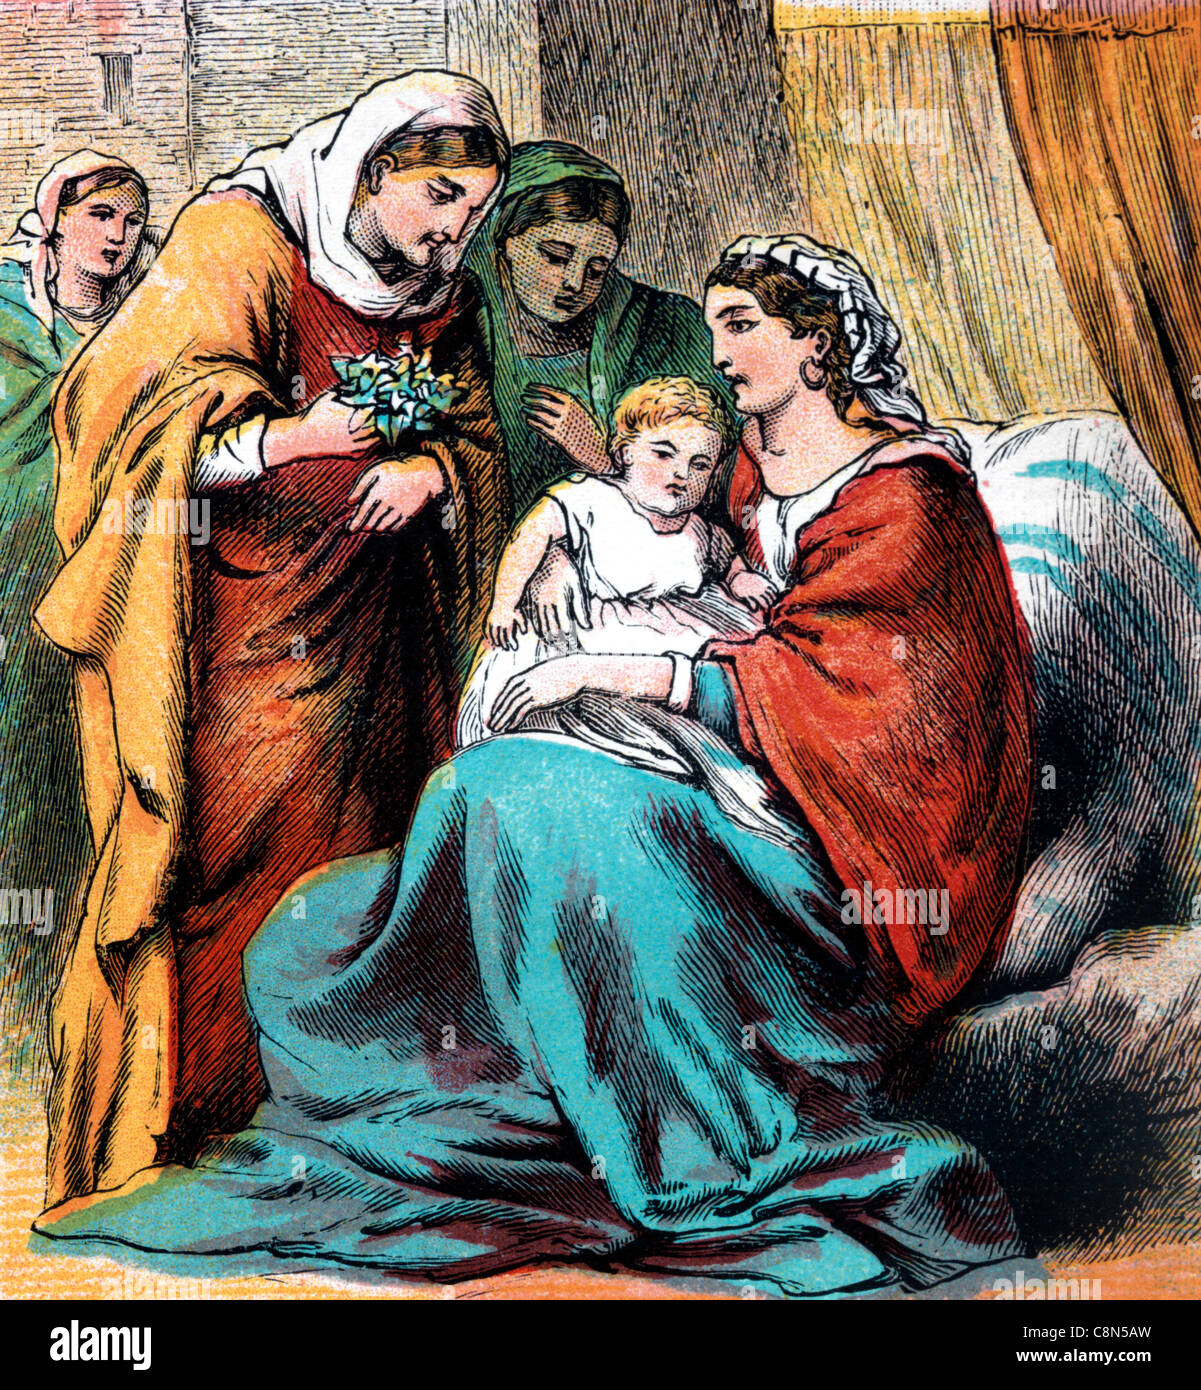 bible stories illustration of ruth handing her son obed over to